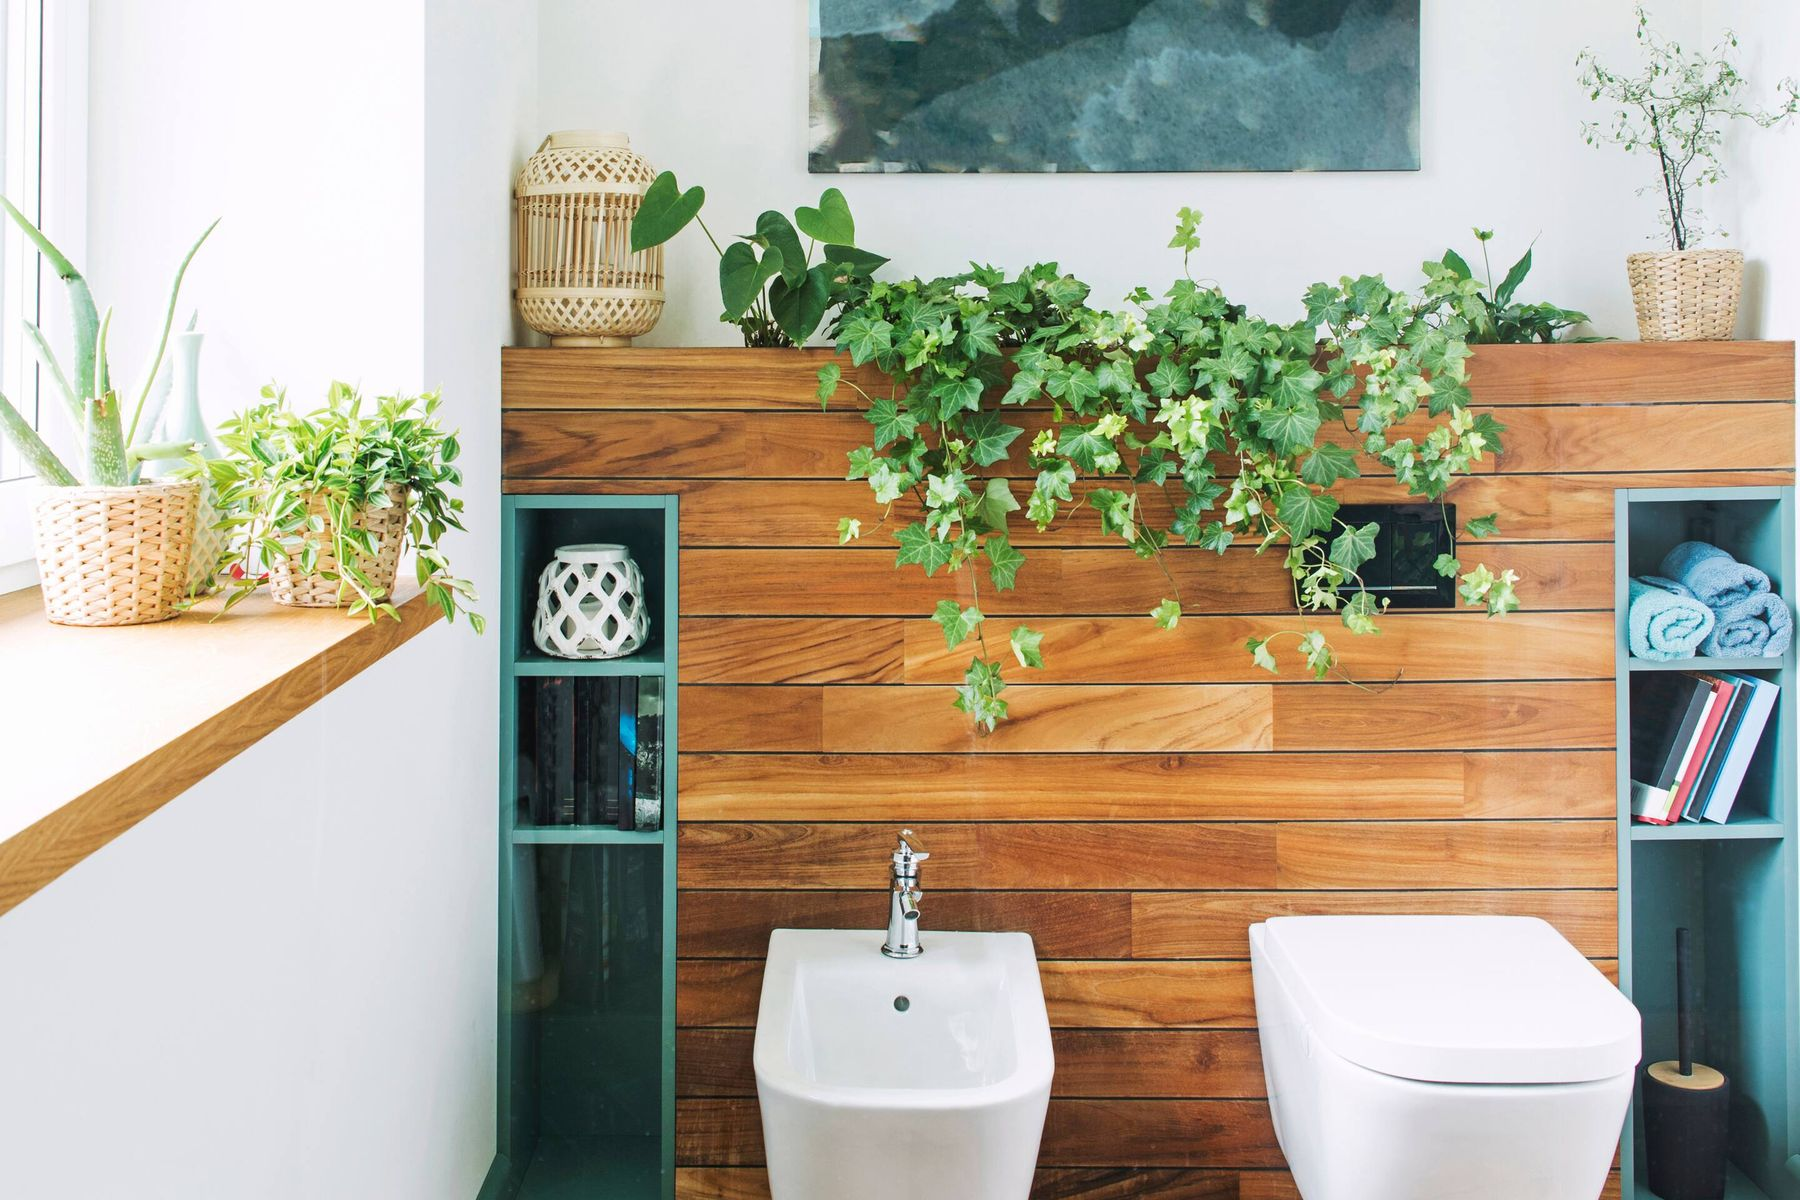 Interior of a bathroom with wooden sconces and plants.